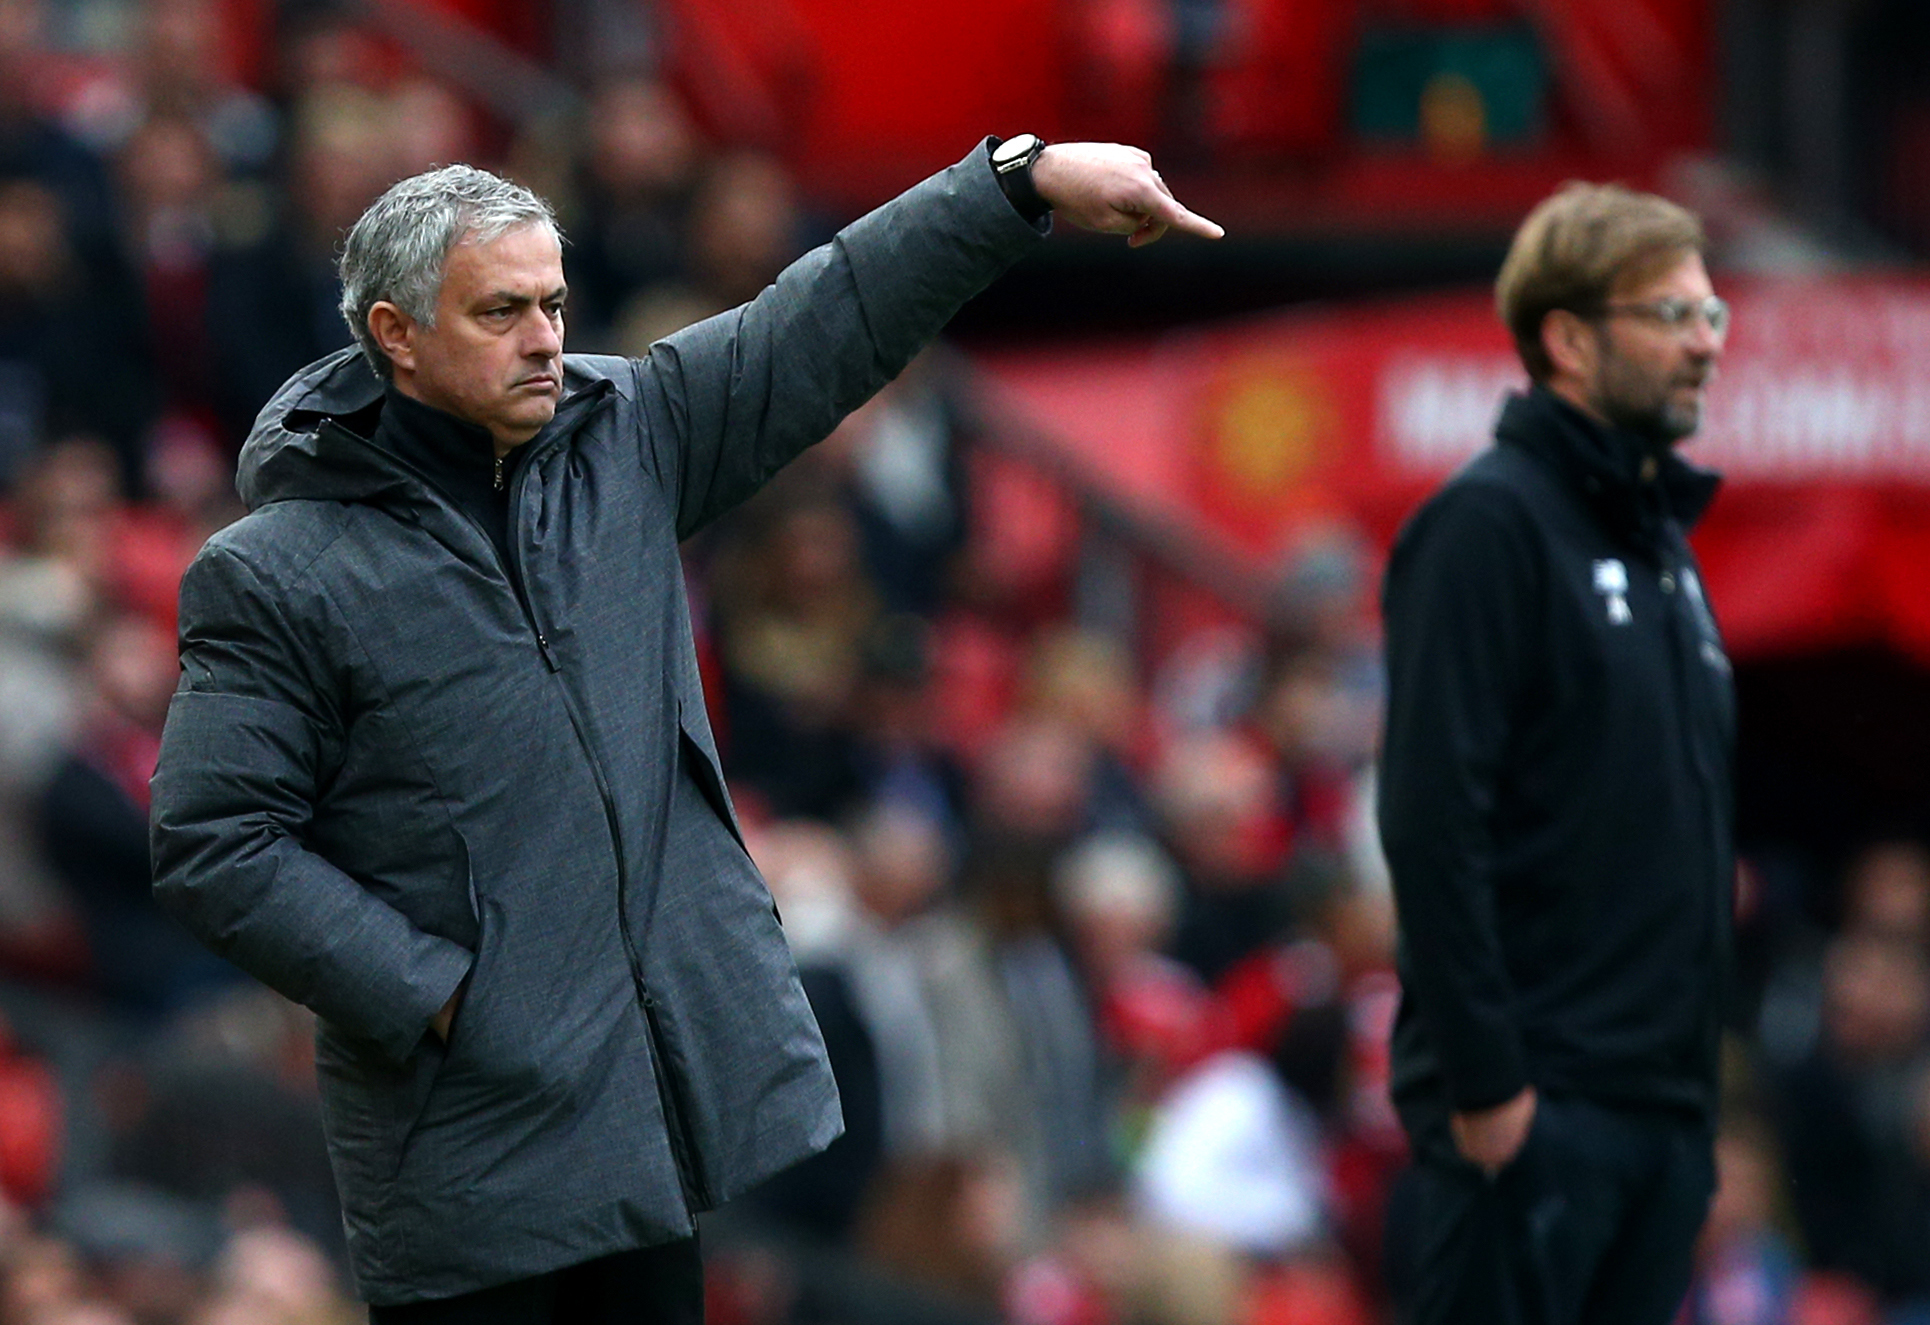 Mourinho gestures on the touchline. Image: PA